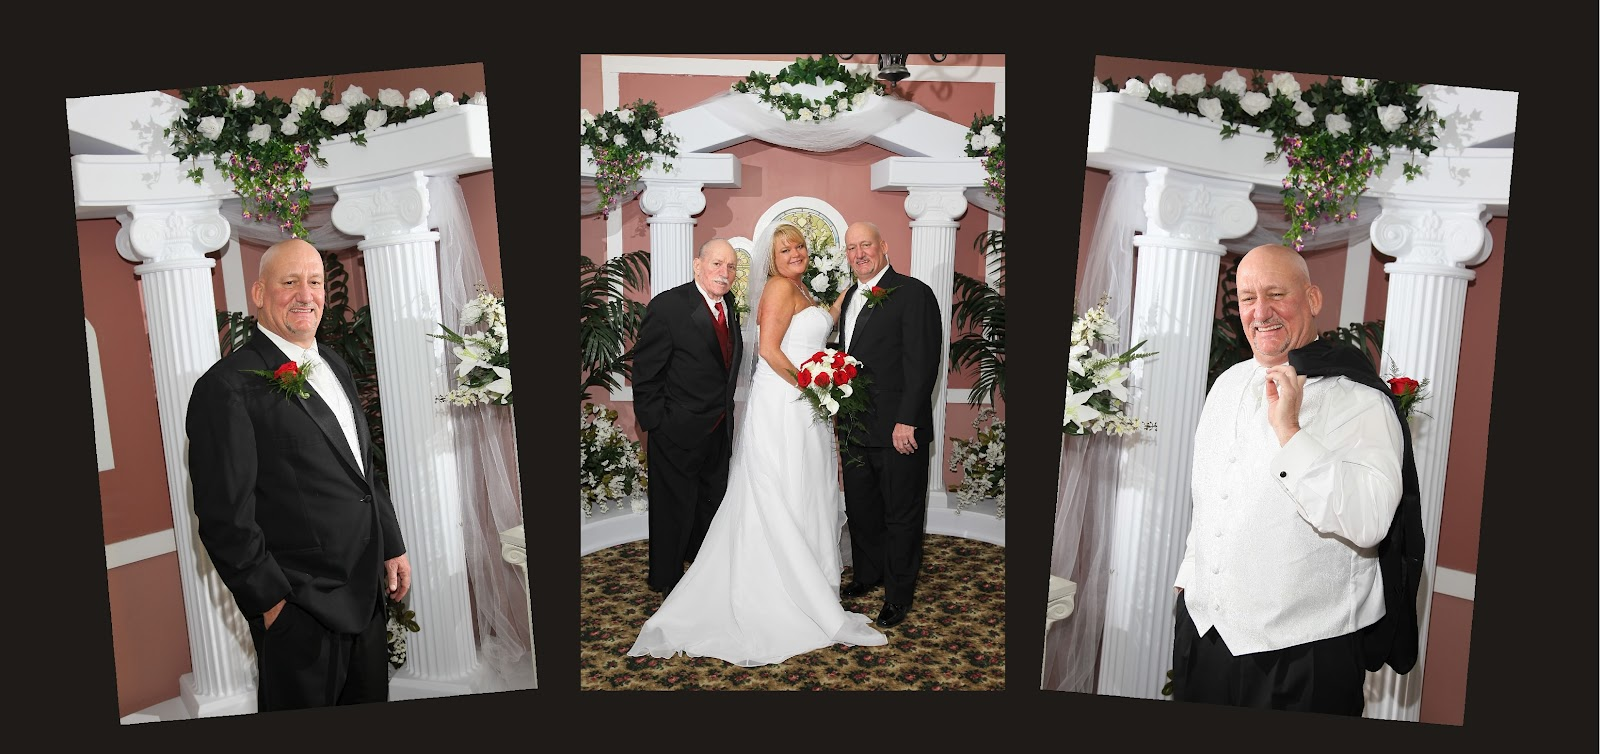 Elope to St Louis: Elope to St Louis Wedding Chapel • 314-472-5017